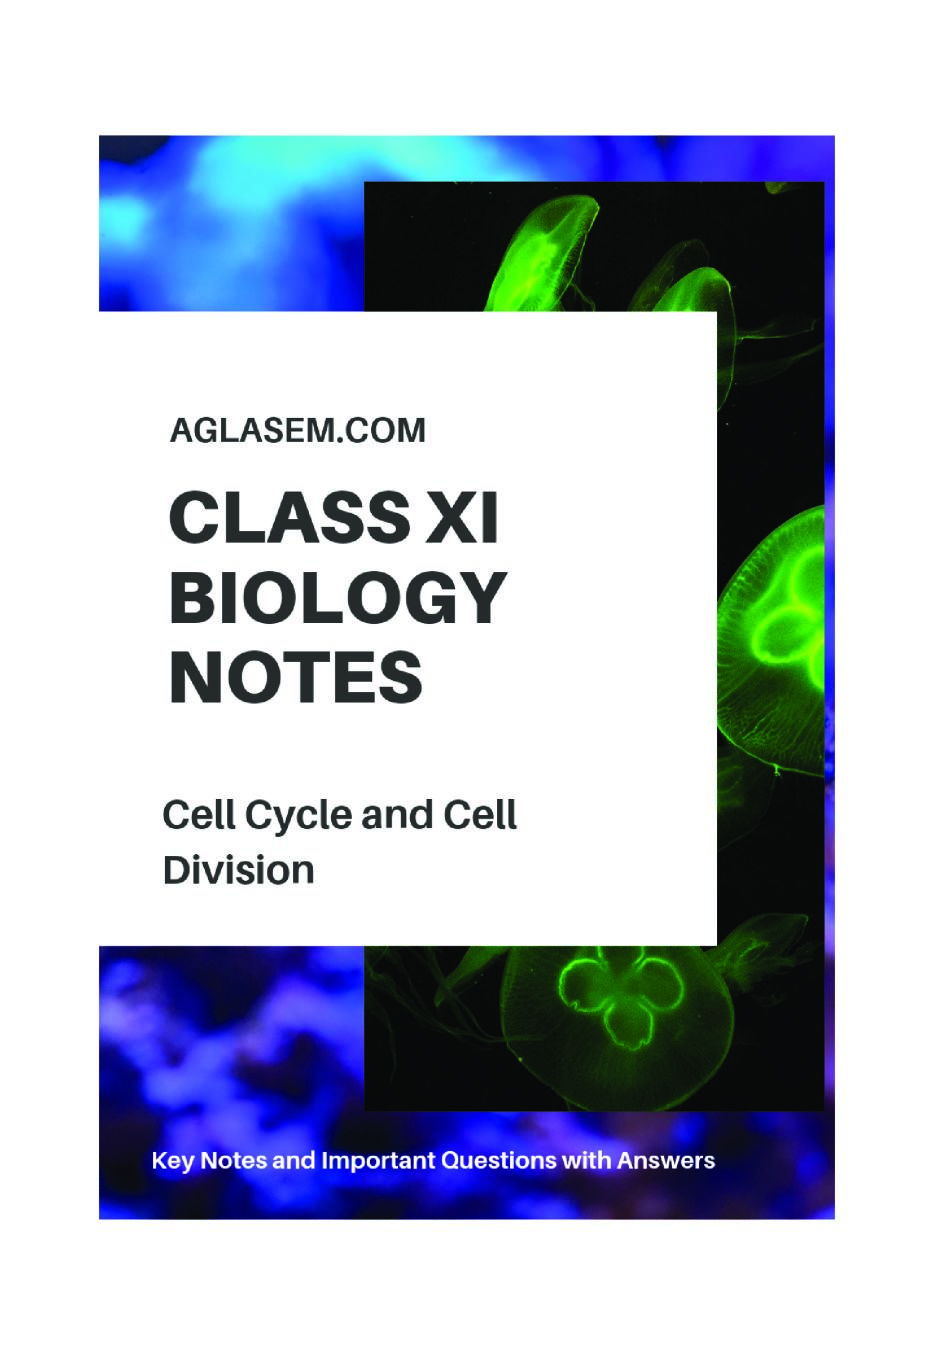 Class 11 Biology Notes for Cell Cycle and Cell Division